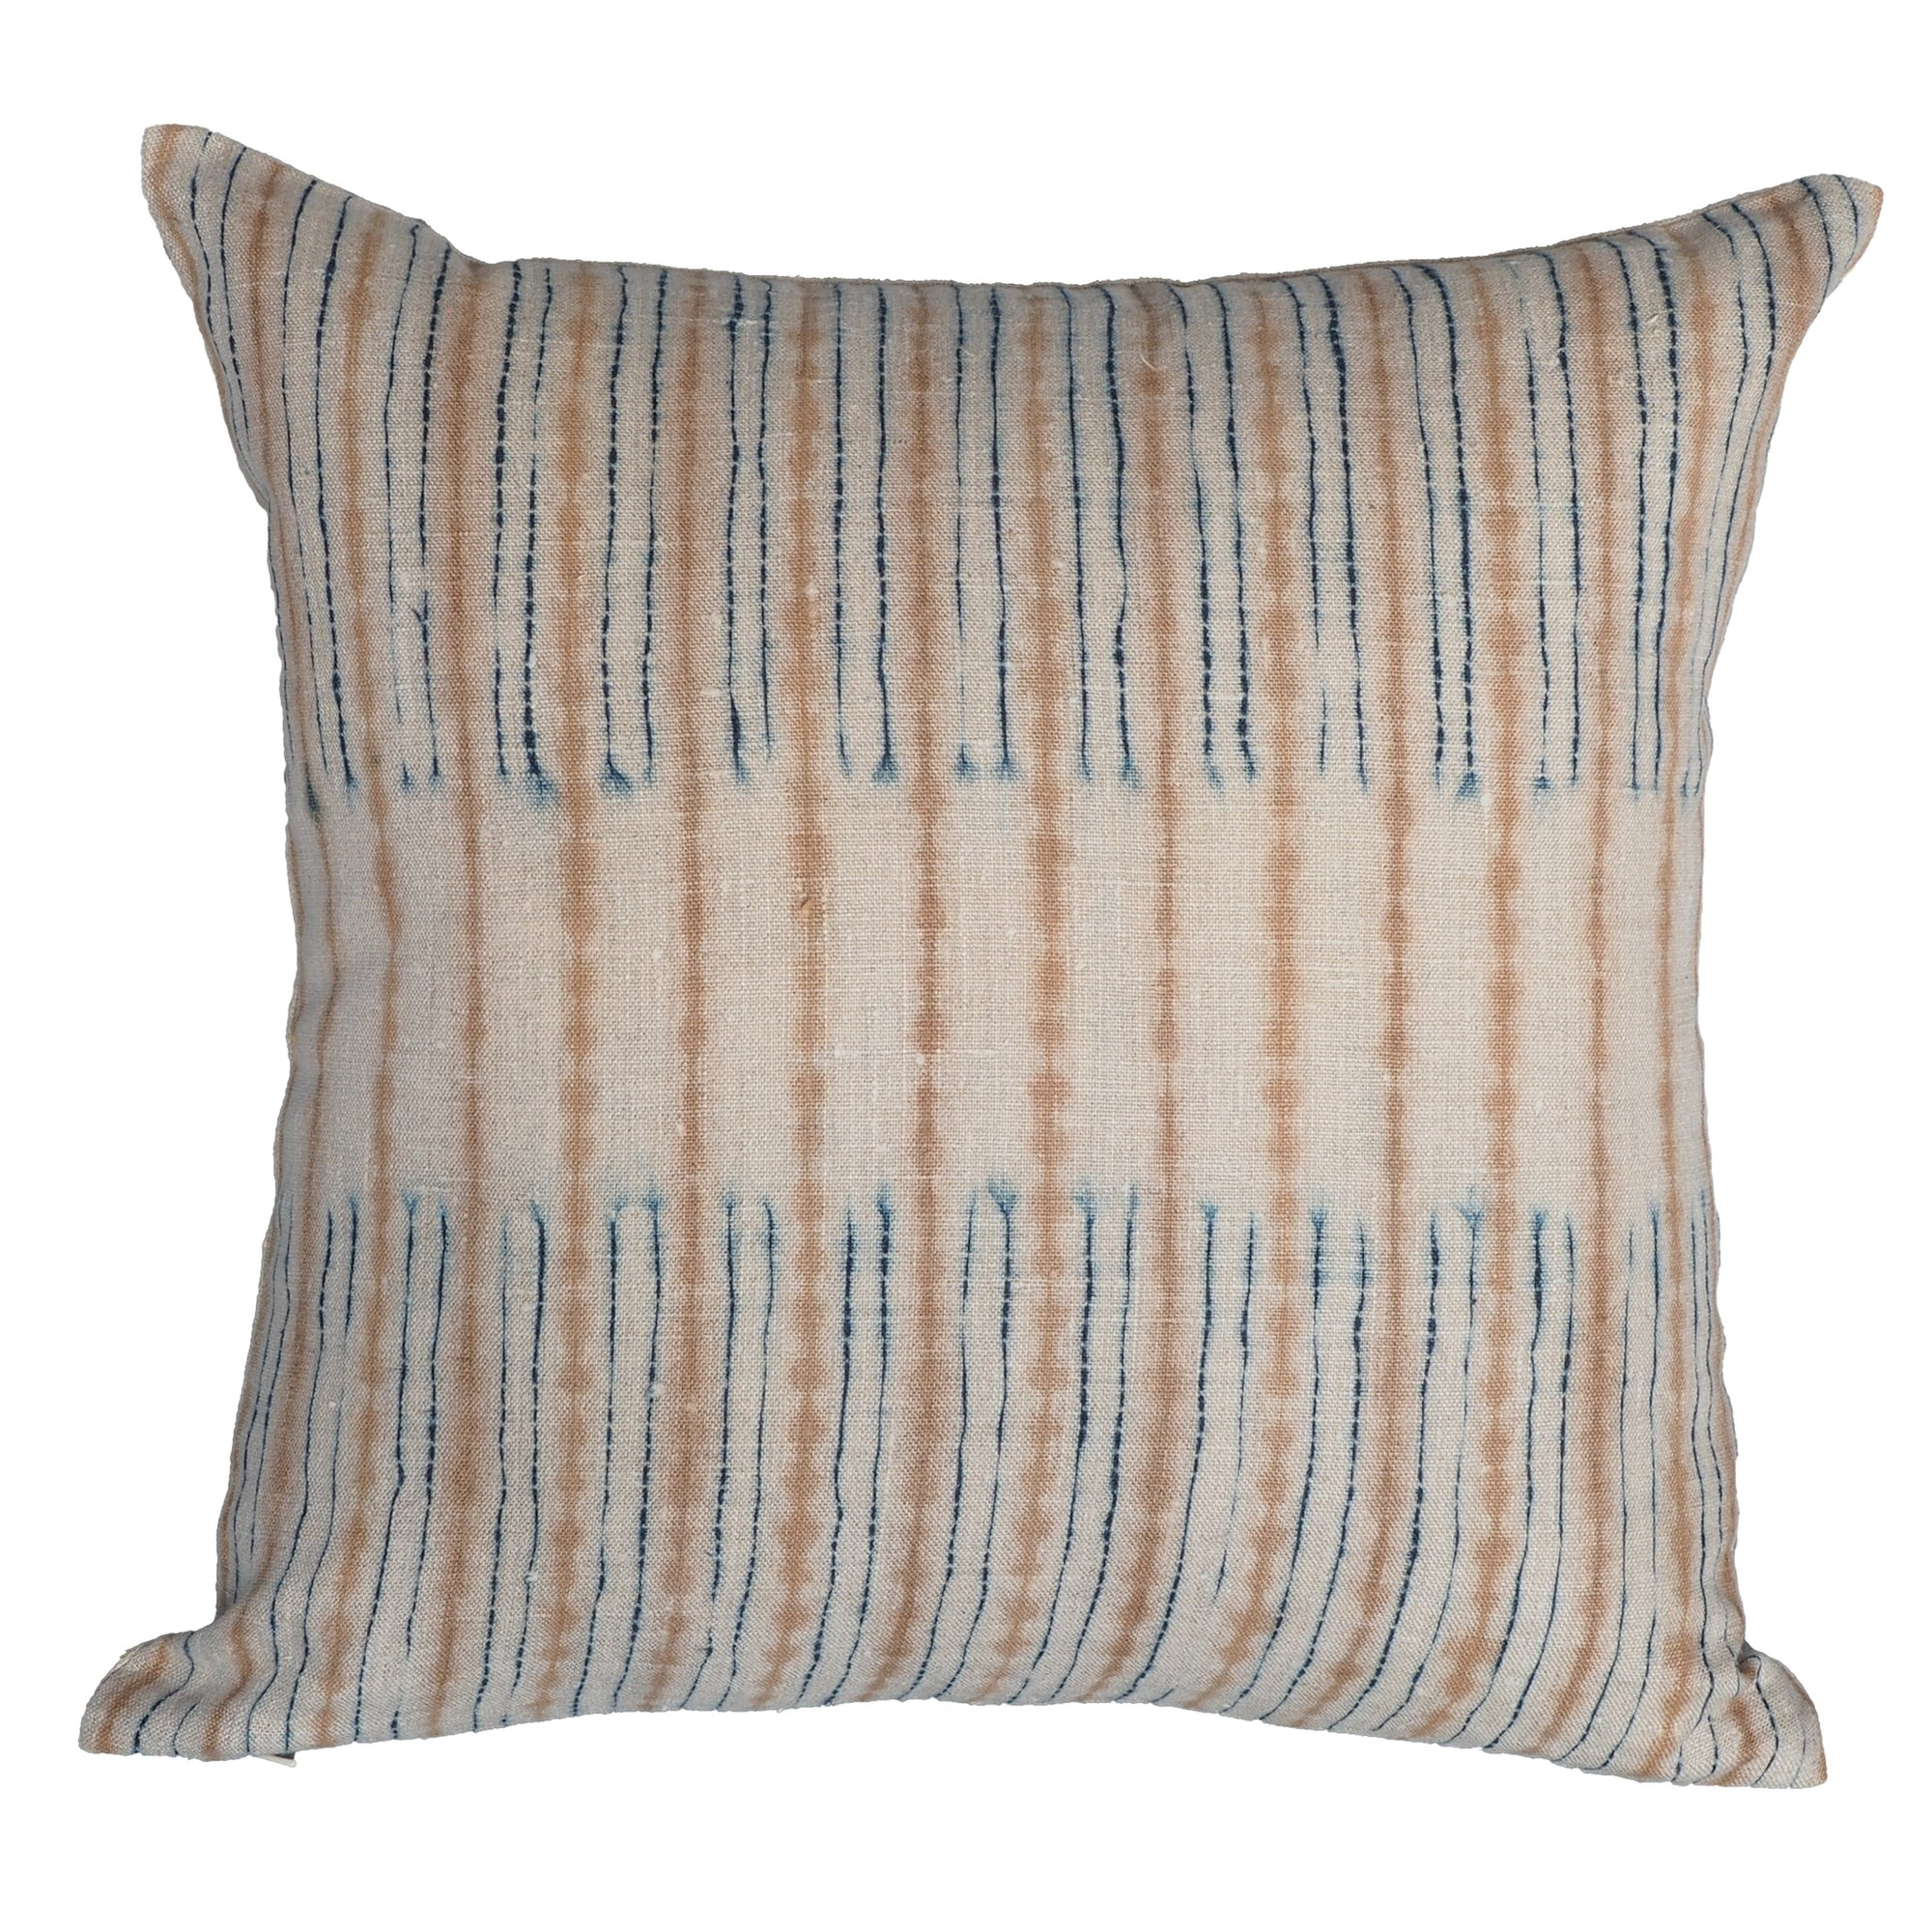 Treeline Pillow Cover